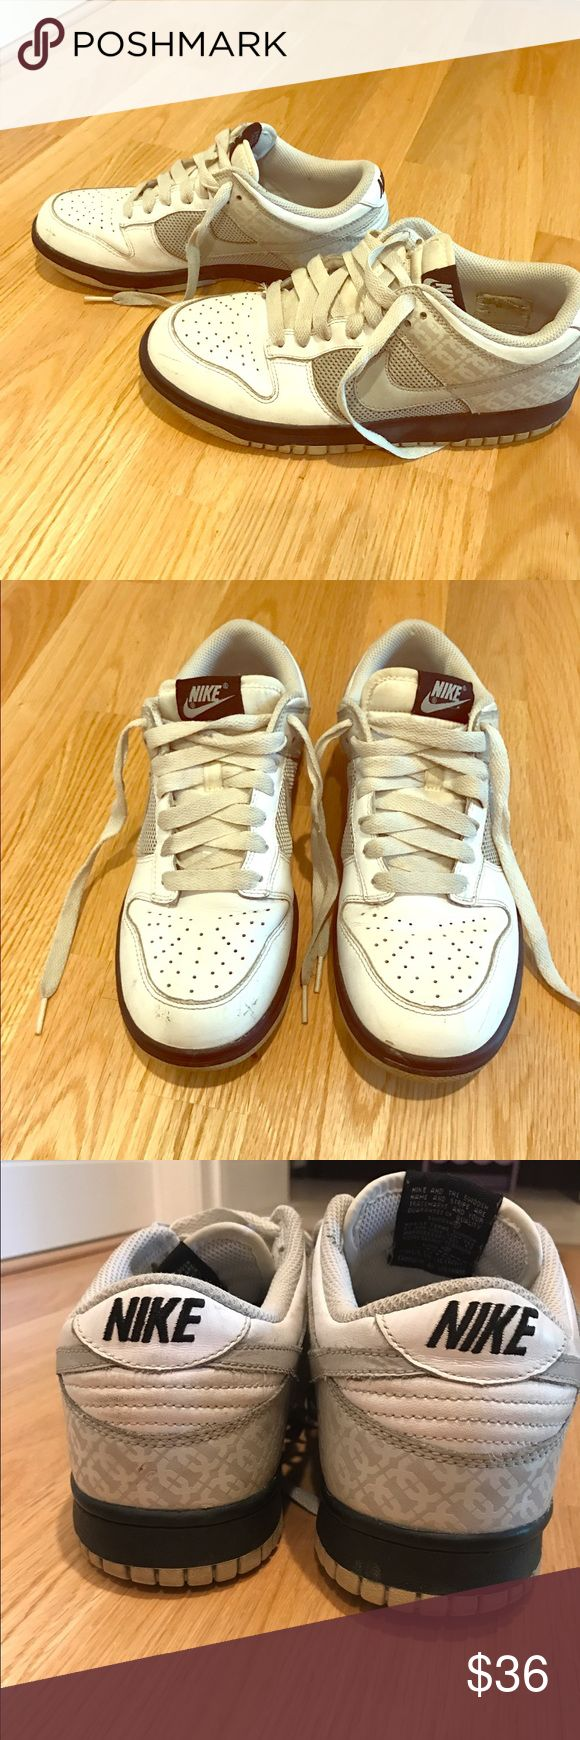 Nike Dunks Women's Nike Dunks.  Some usual wear and a few scuffs ( price will reflect) .  Otherwise good condition! Very stylish print. Nike Shoes Sneakers